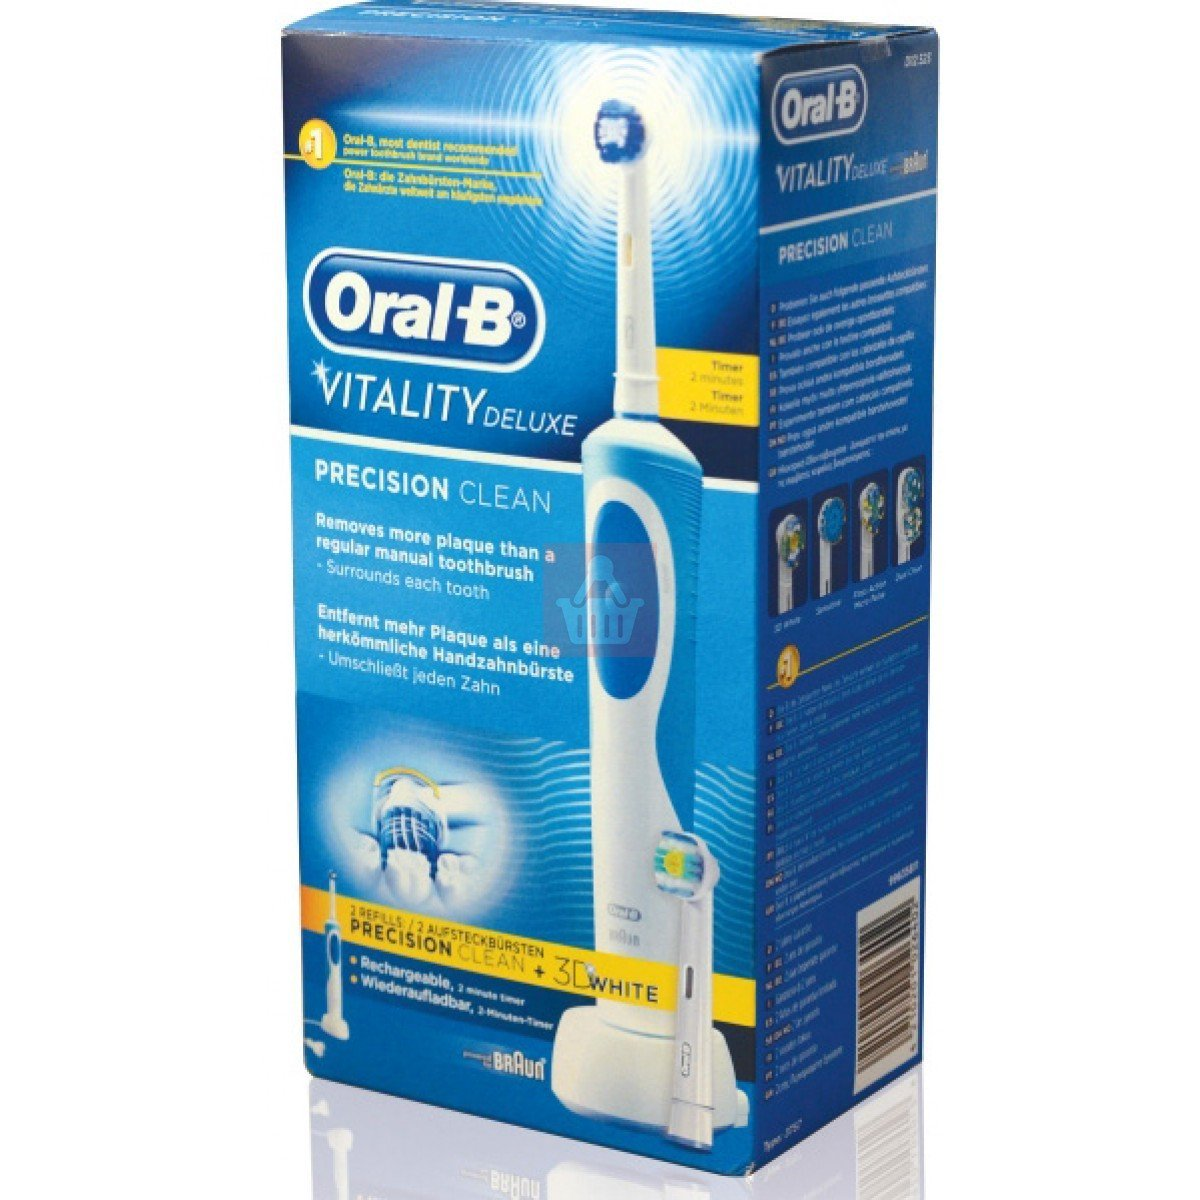 Braun Vitality D12.523 Oral-B Toothbrush with Extra Replacement Head, European Cord (Not for USA/Canada) 71o2xx5kYWL